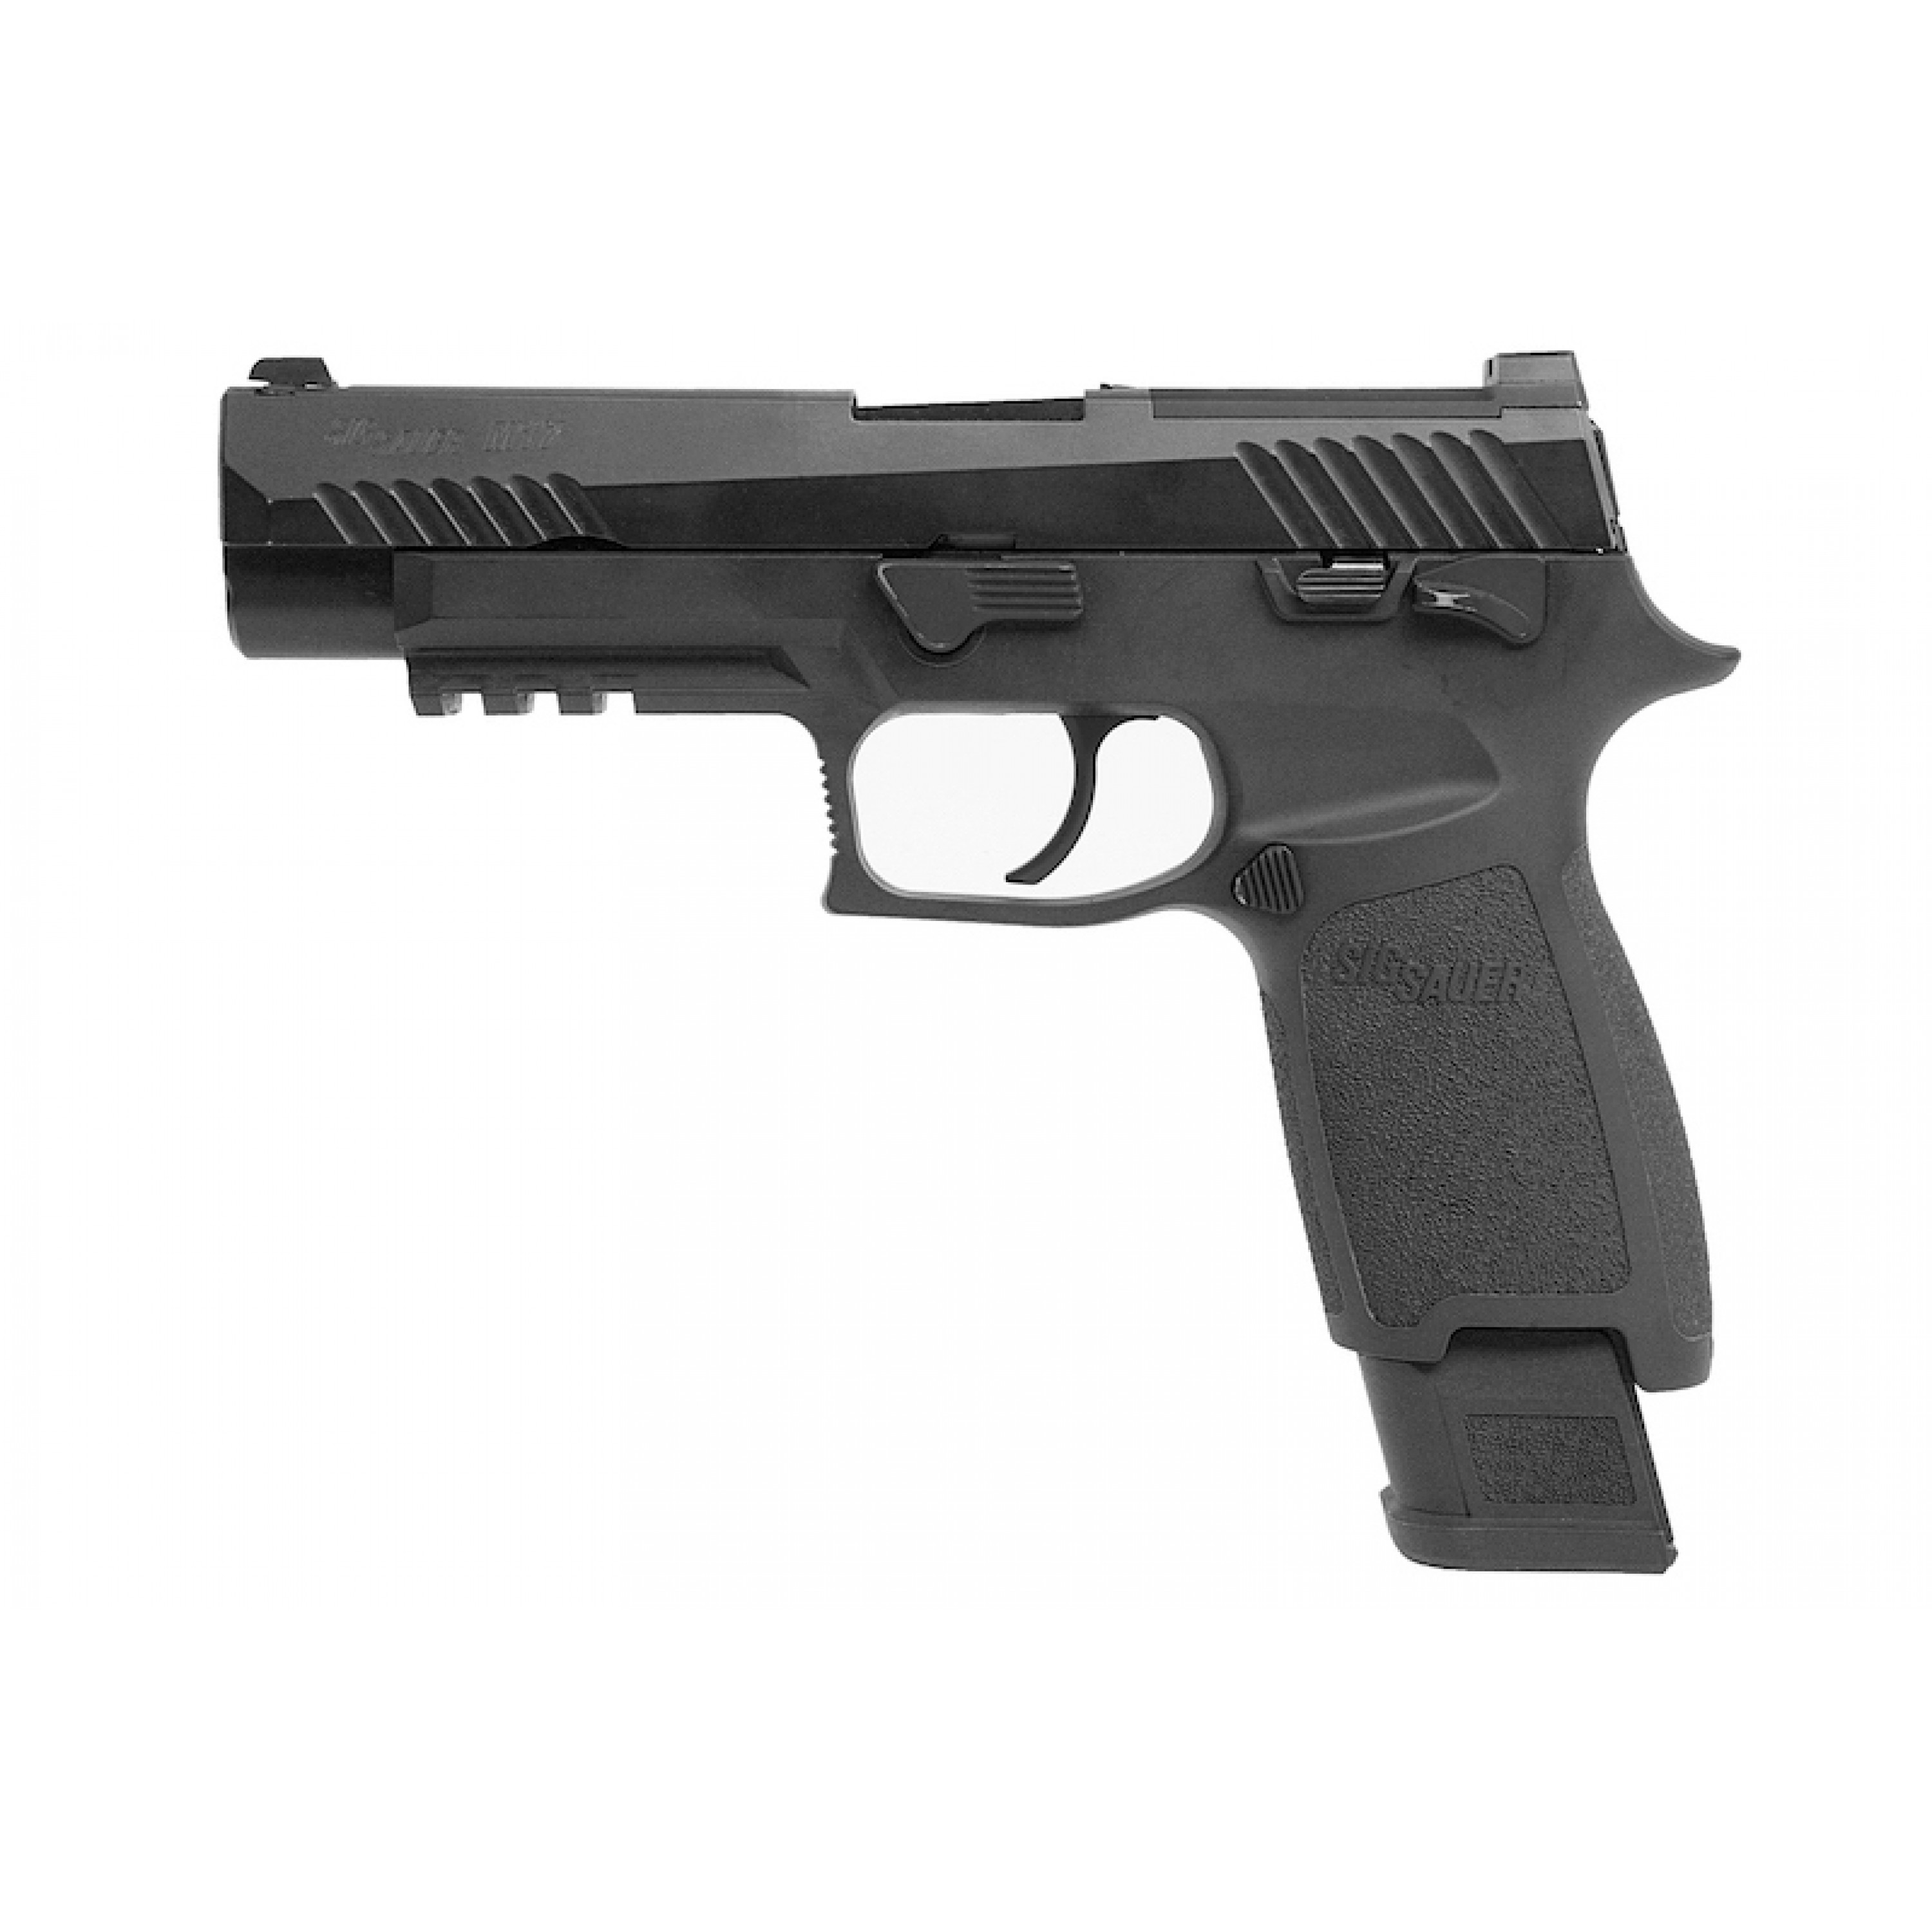 SIG AIR P320 M17 6mm CO2 Version GBB Pistol - Black (Licensed by SIG Sauer) (by VFC)